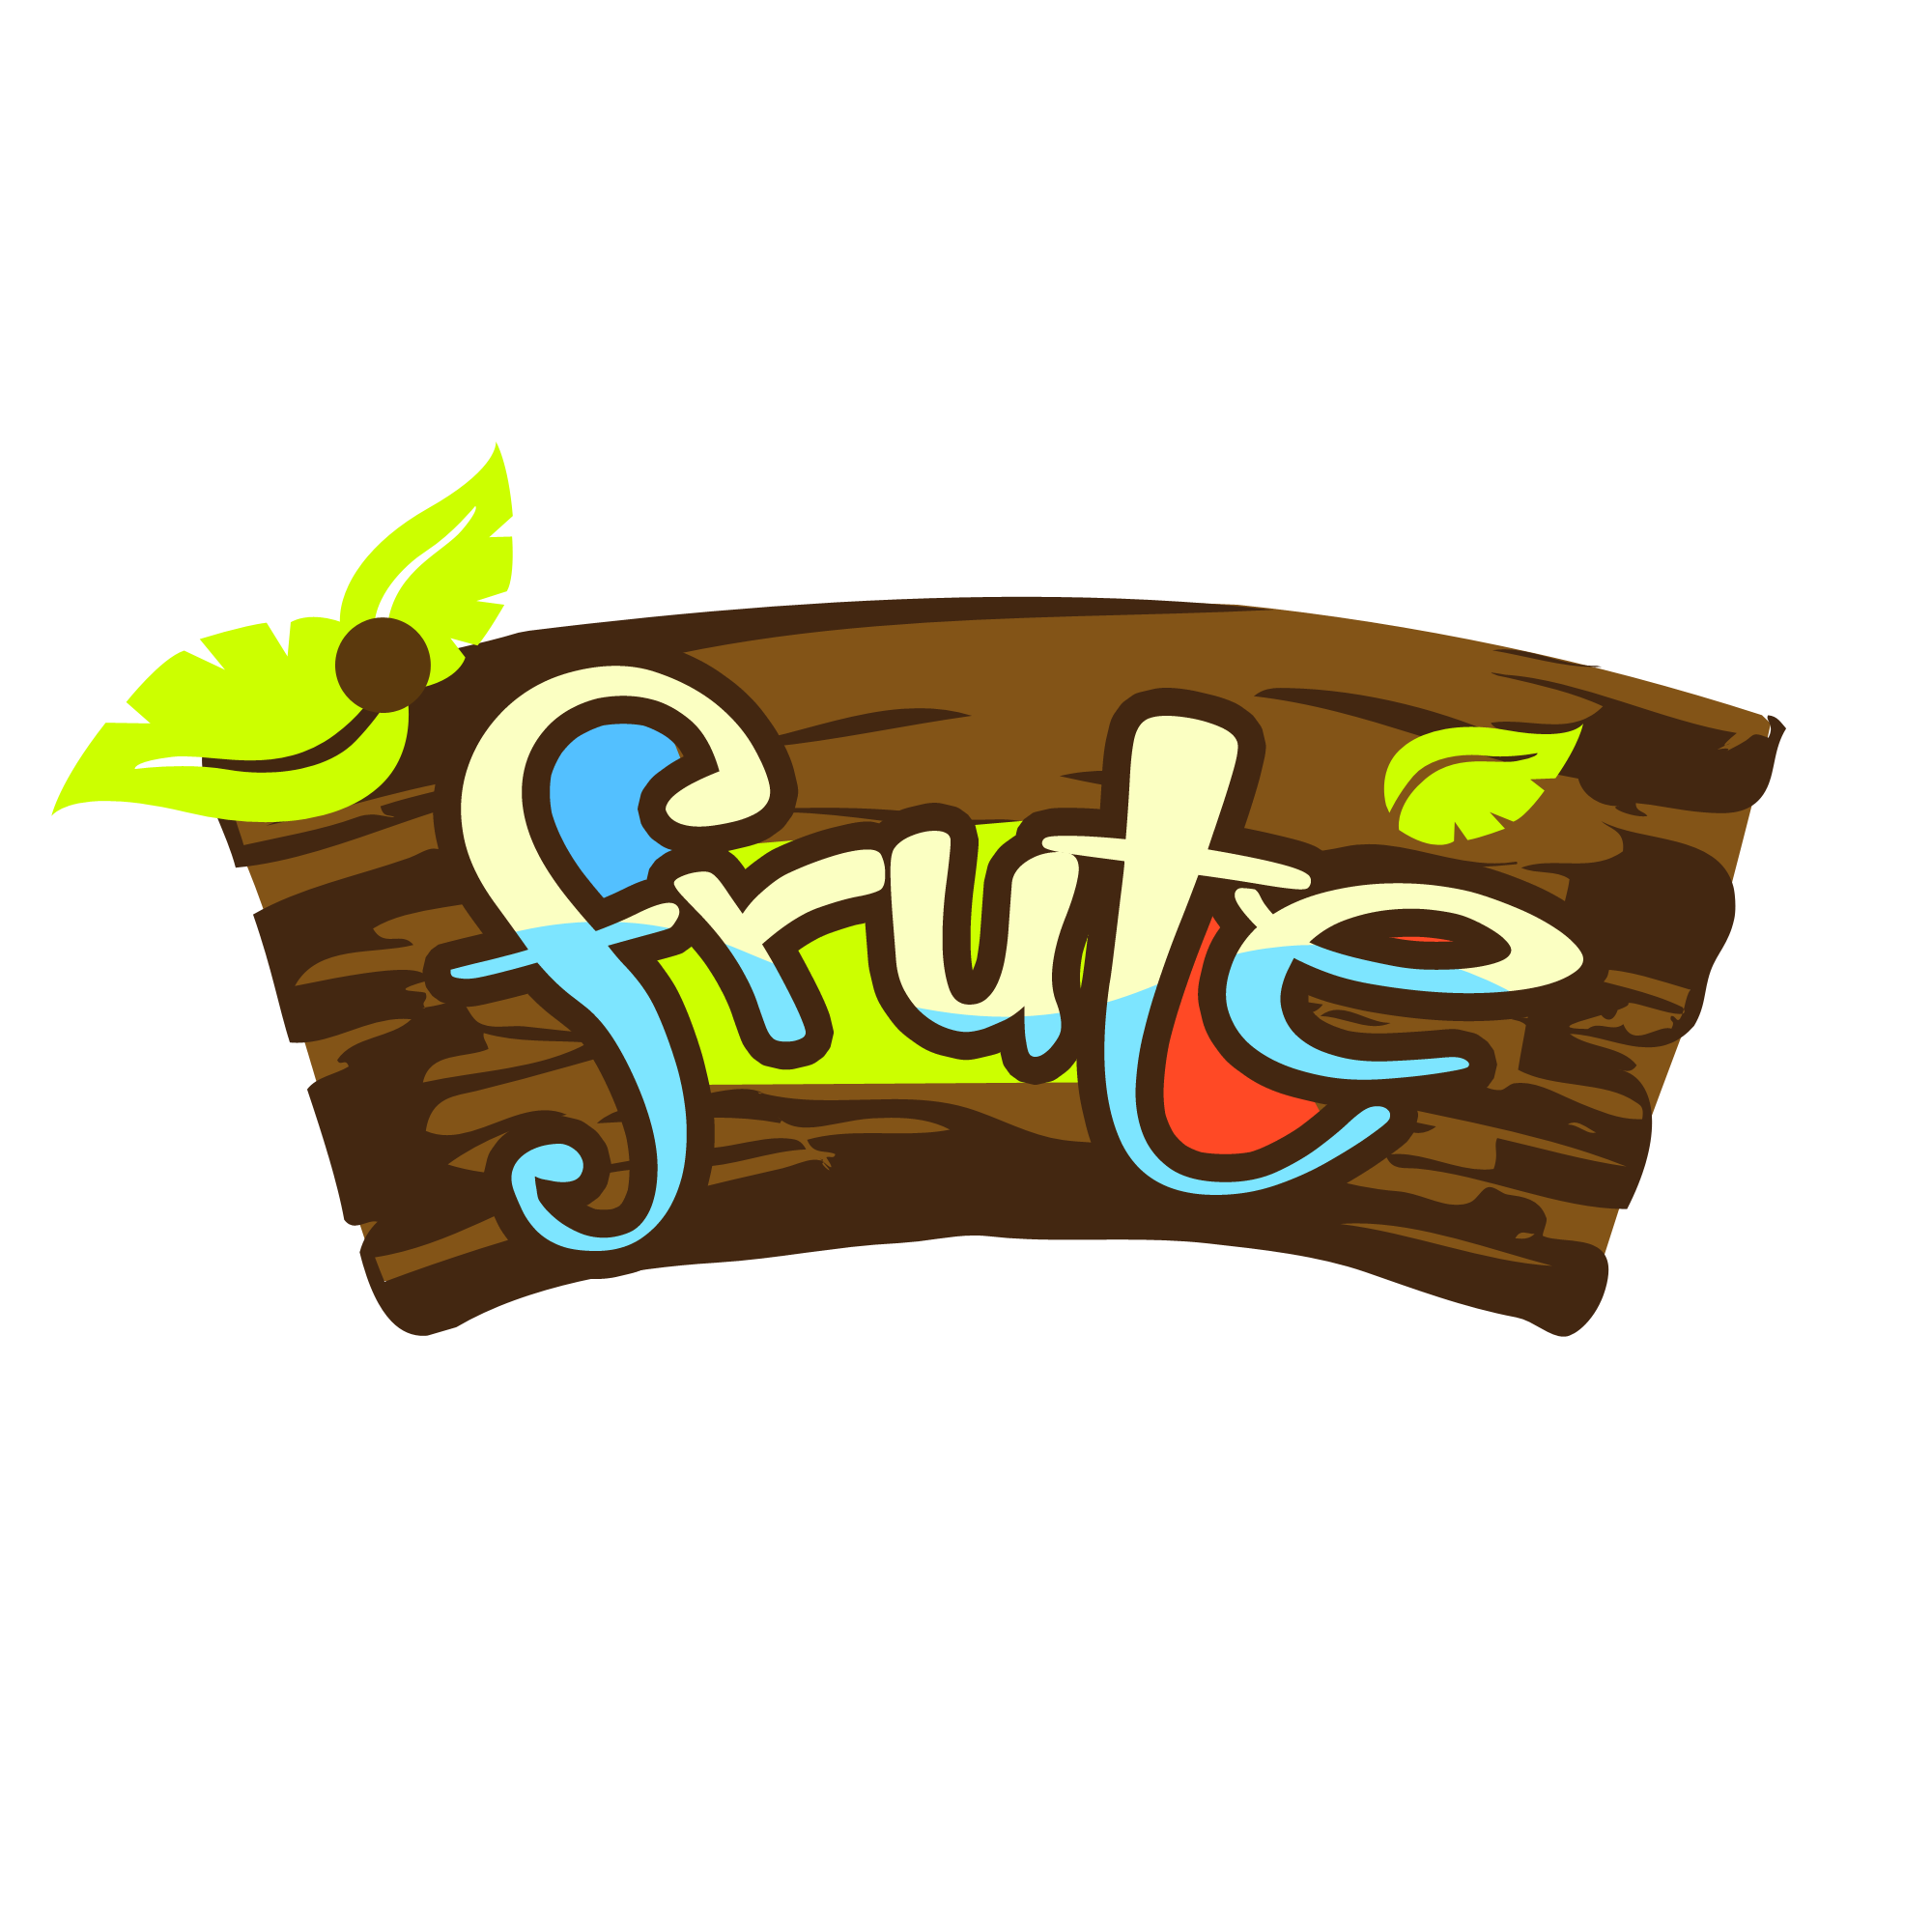 Logo Design by Kenneth Joel - Entry No. 92 in the Logo Design Contest Imaginative Logo Design for Fruté.